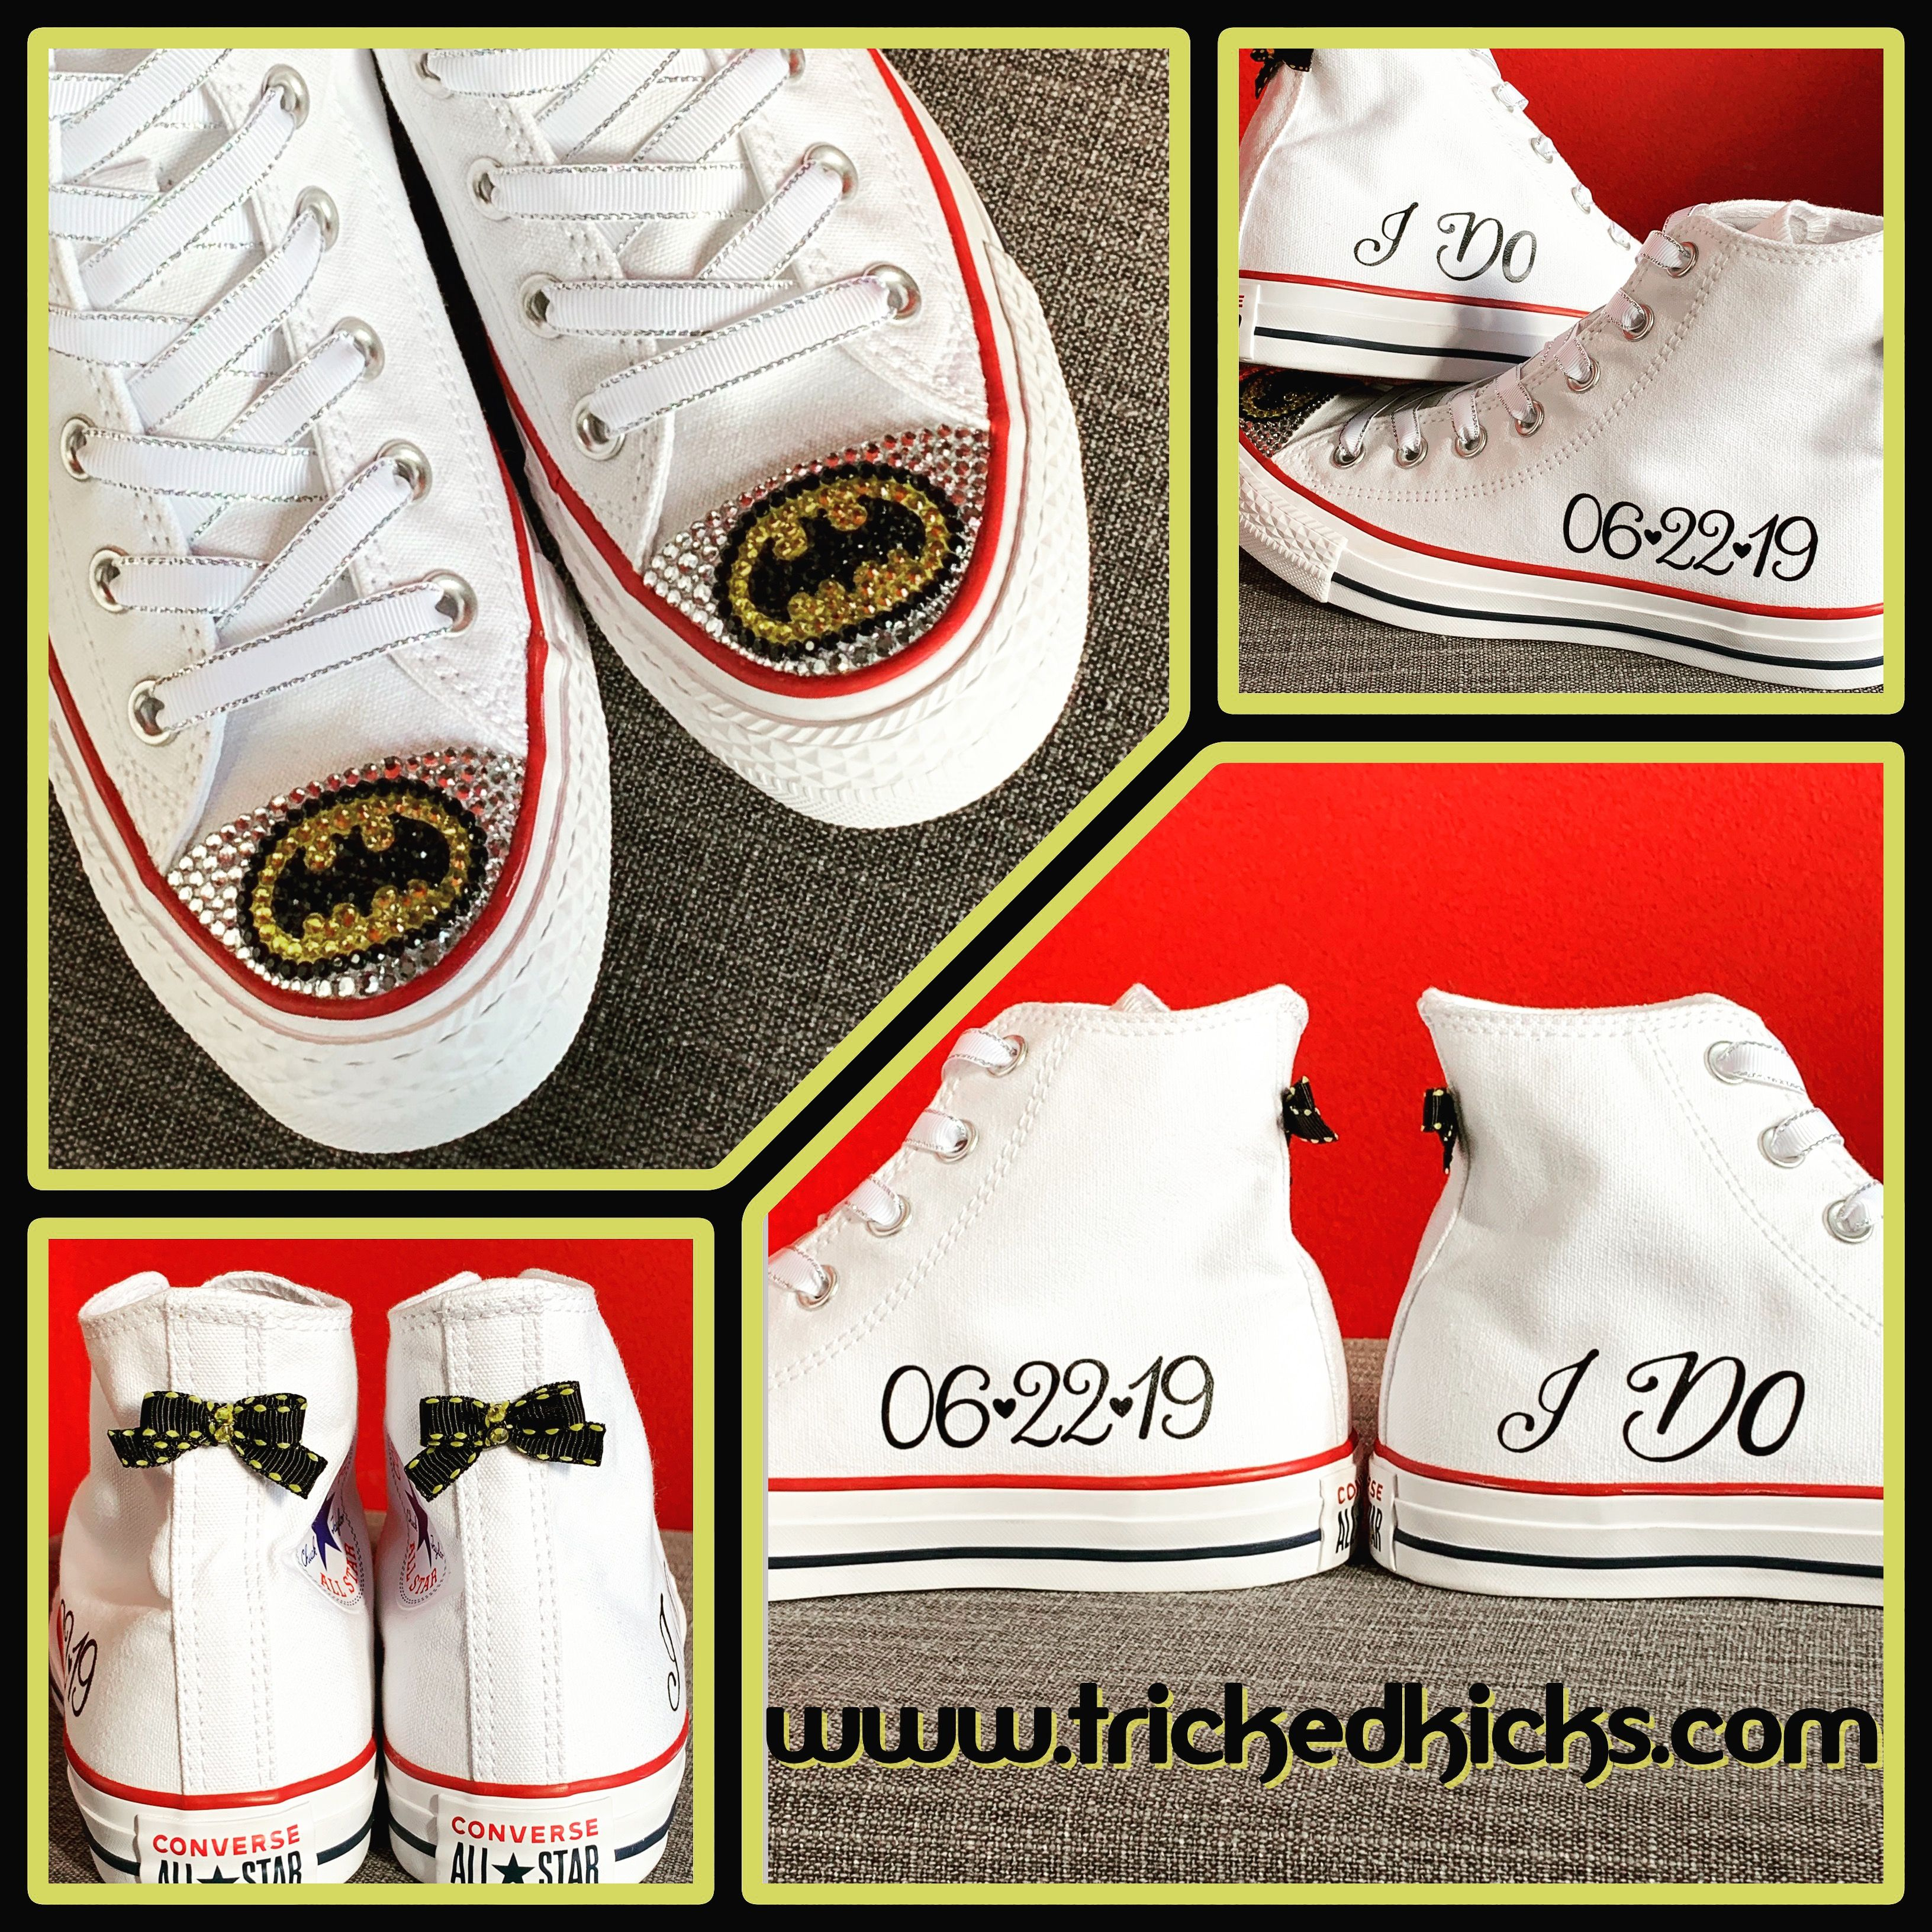 White high top Converse shoes with Batman bling, custom